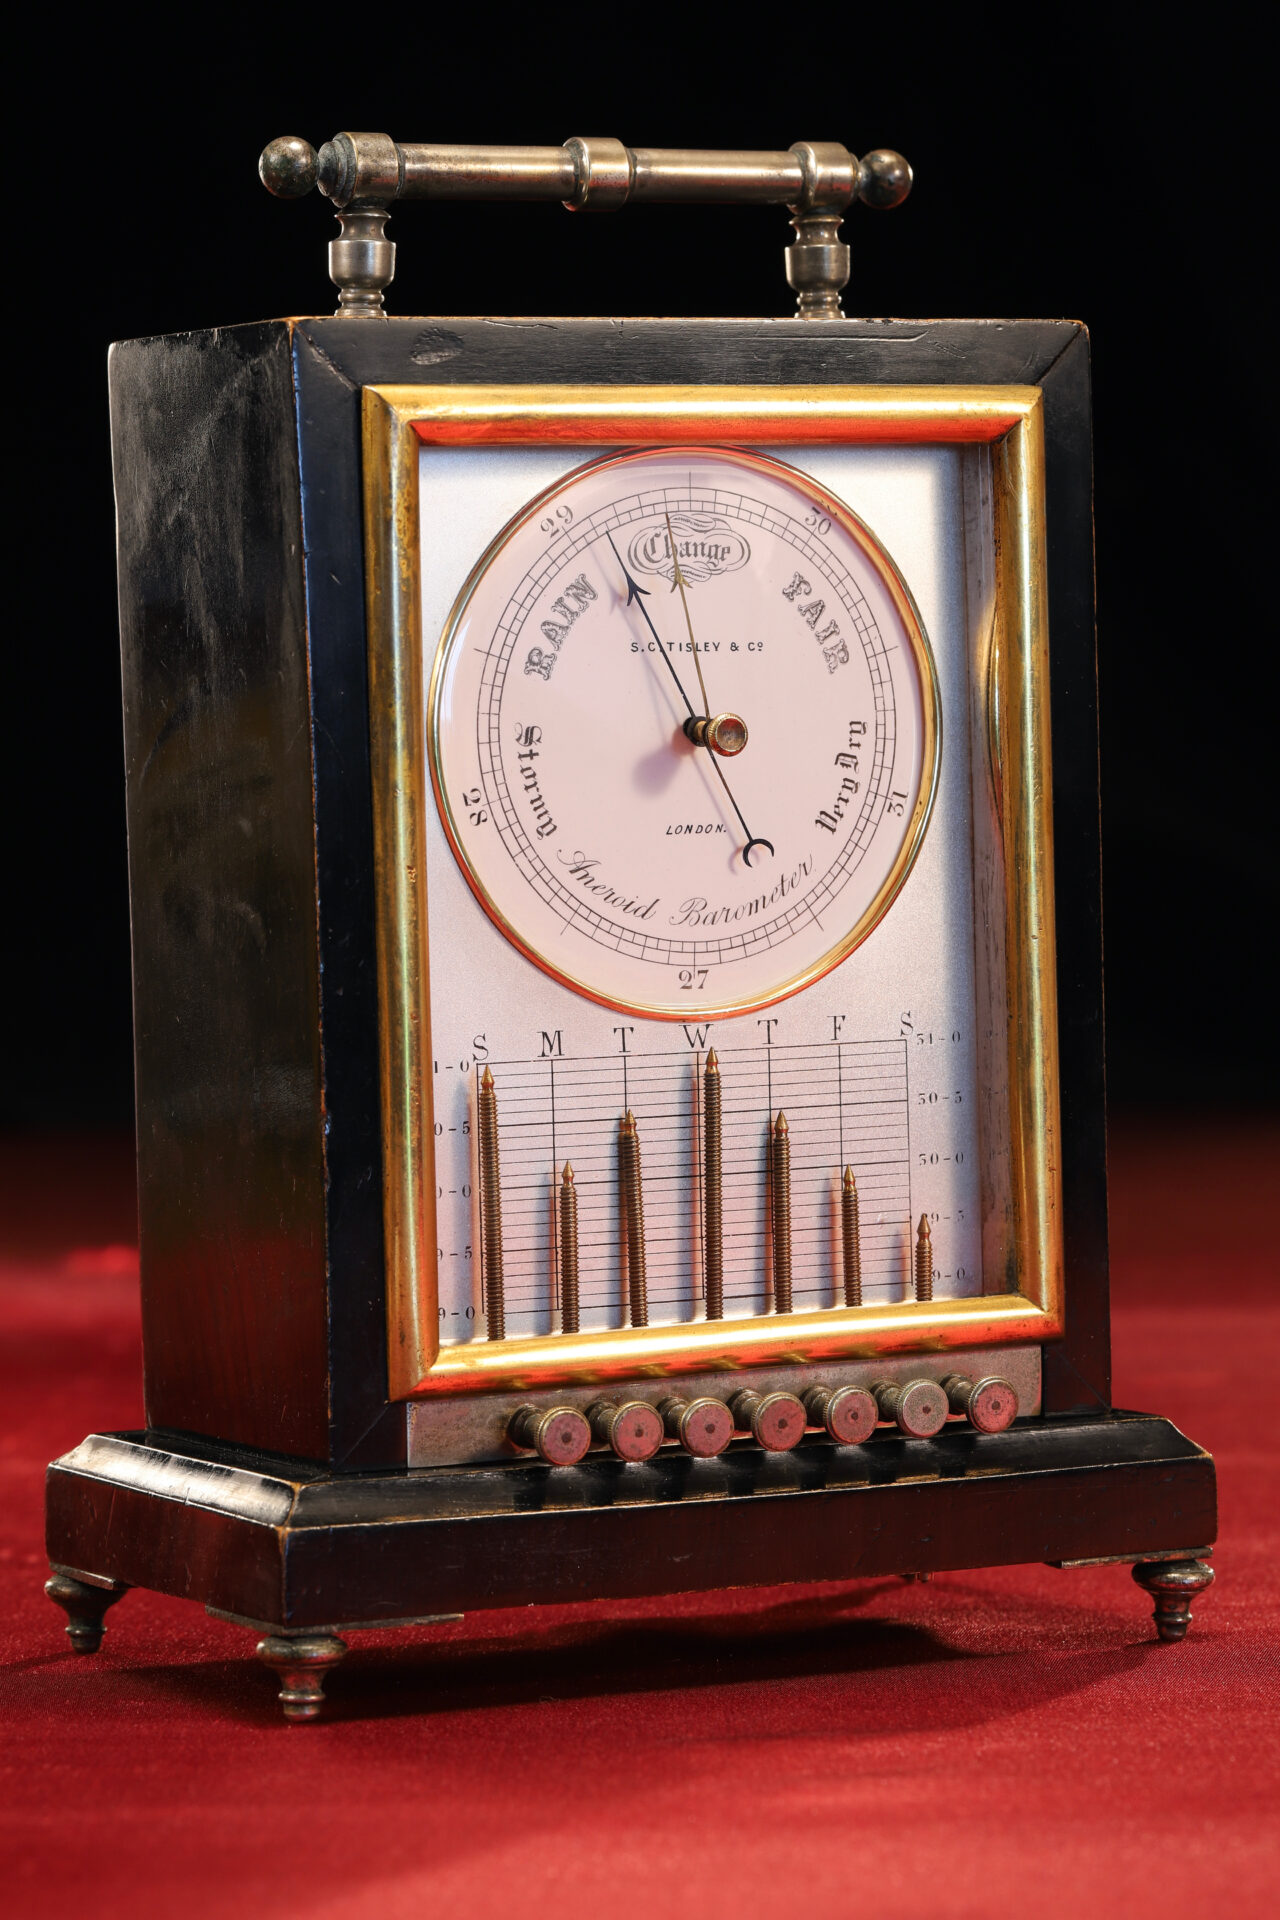 Image of front of Ebonised Recording Aneroid Barometer or Barograph c1878 taken from lefthand side